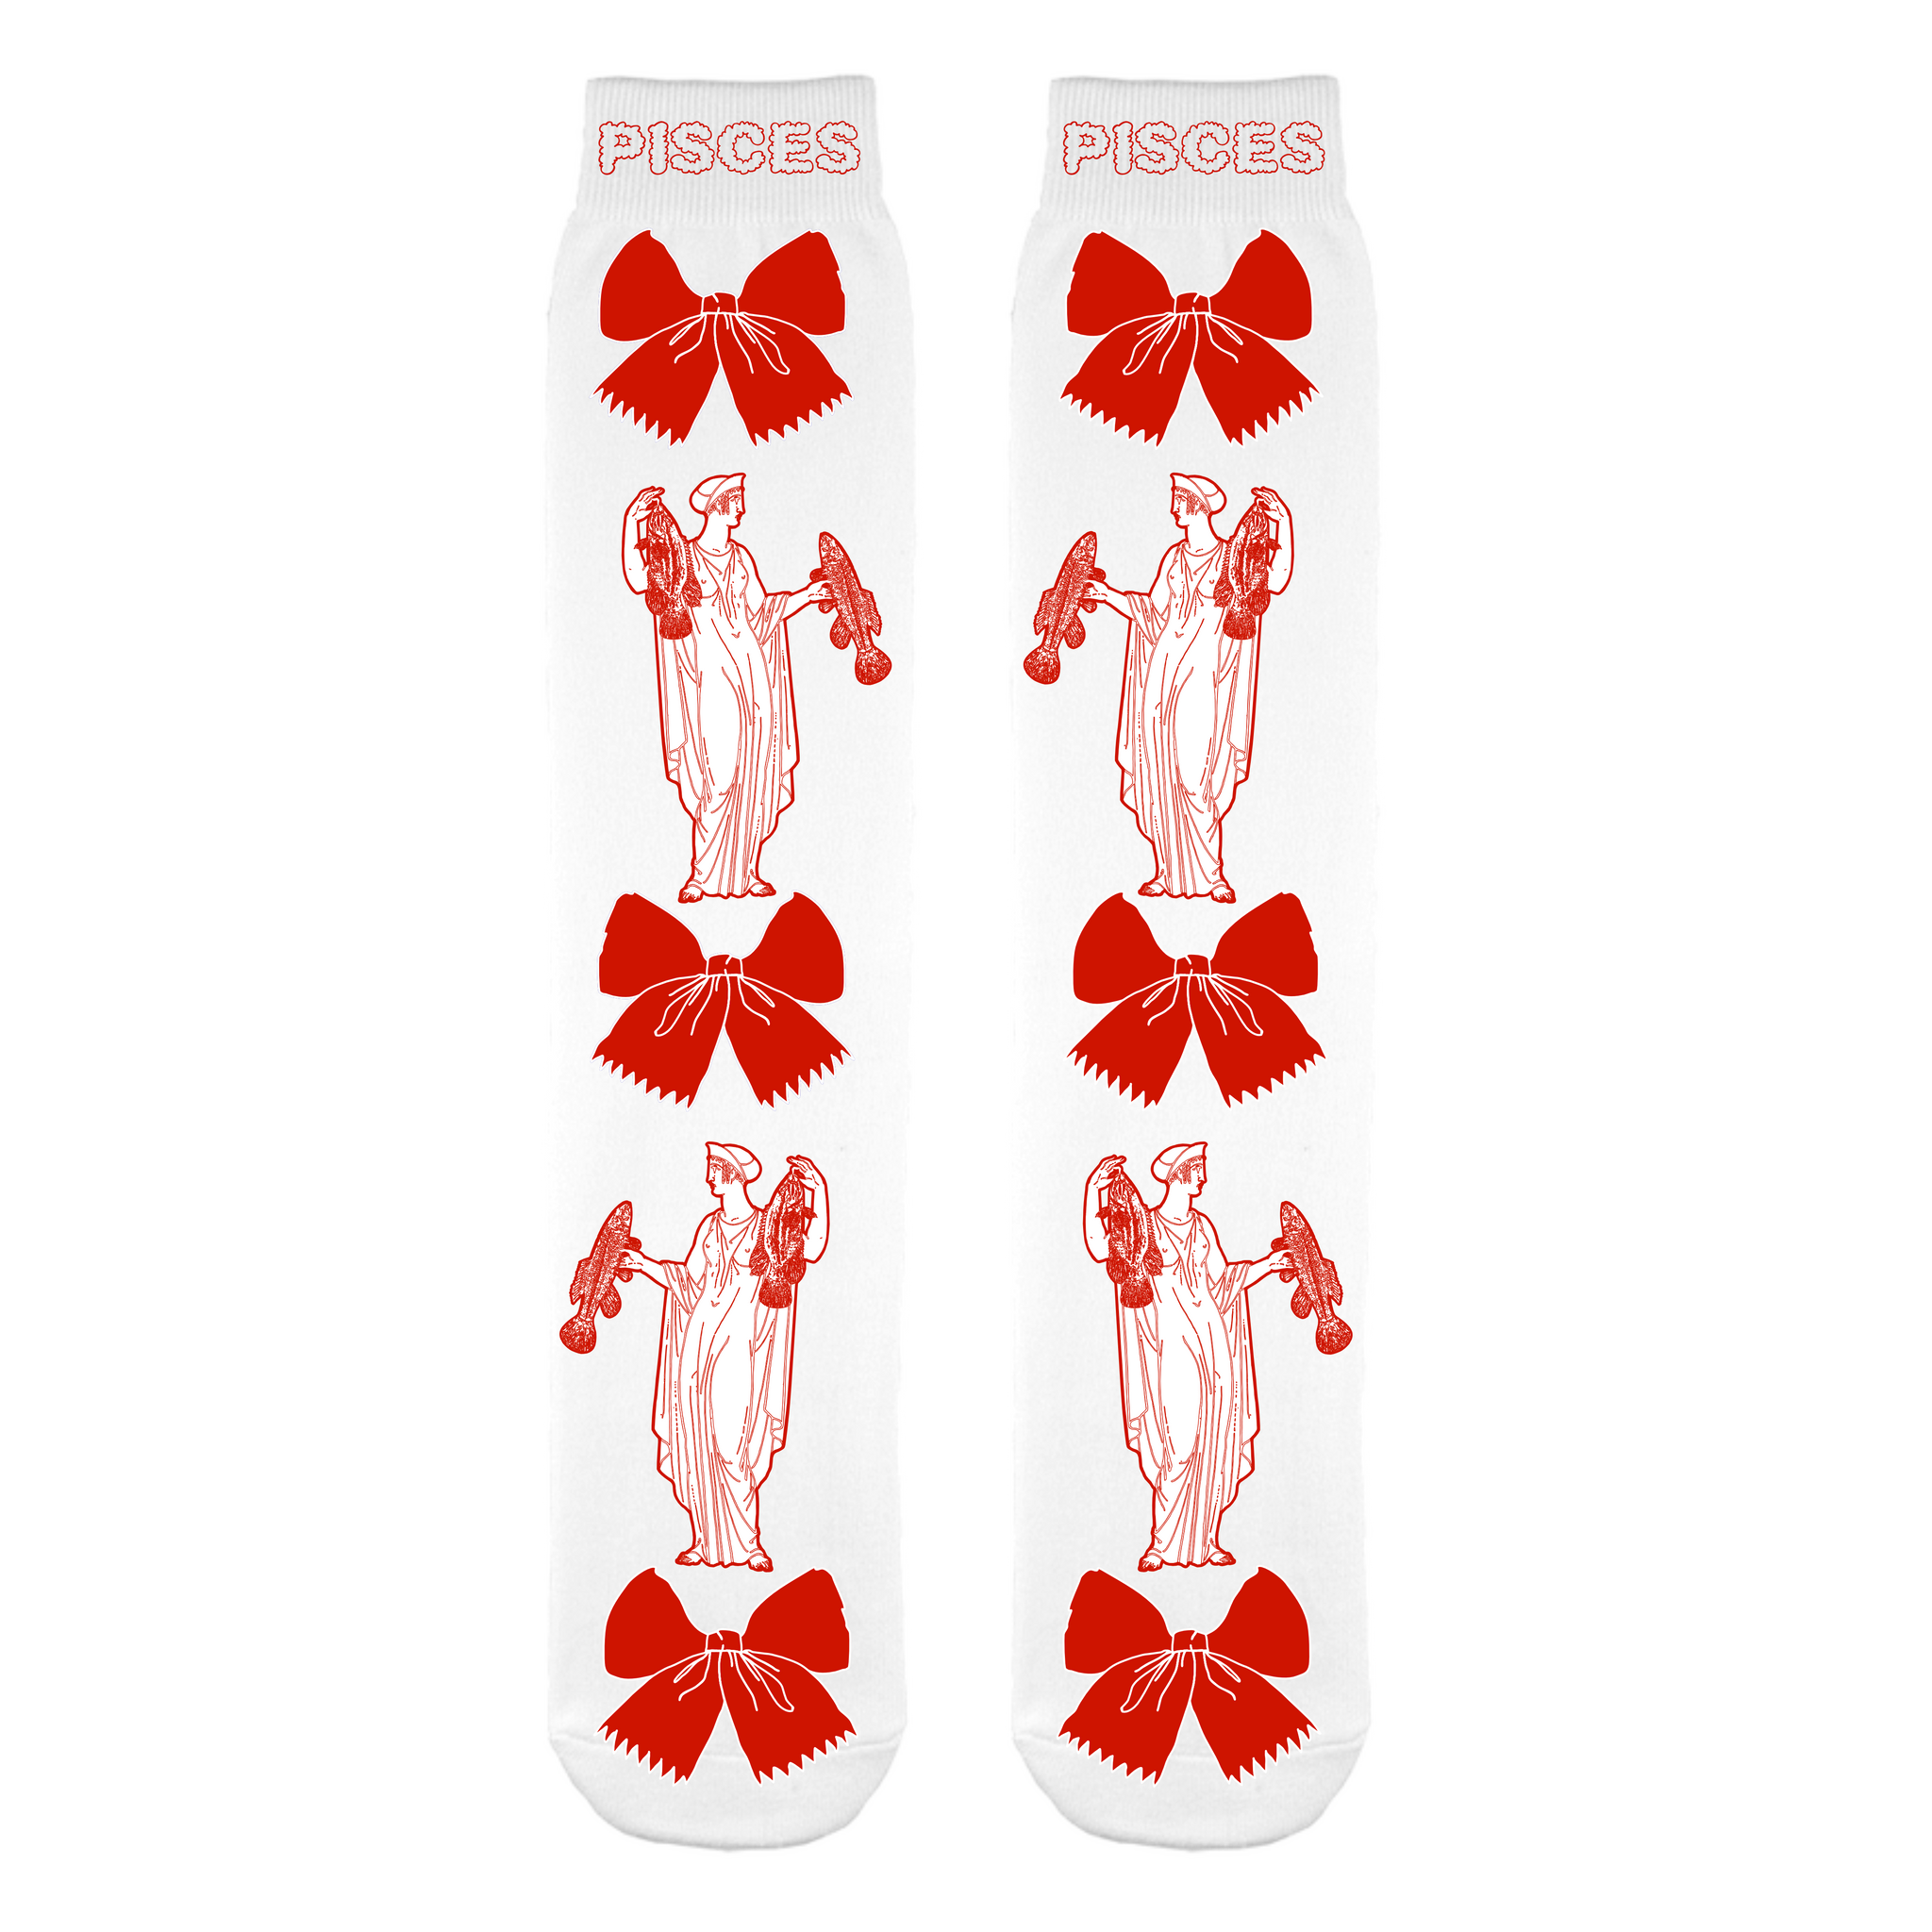 Pisces Red & White Socks